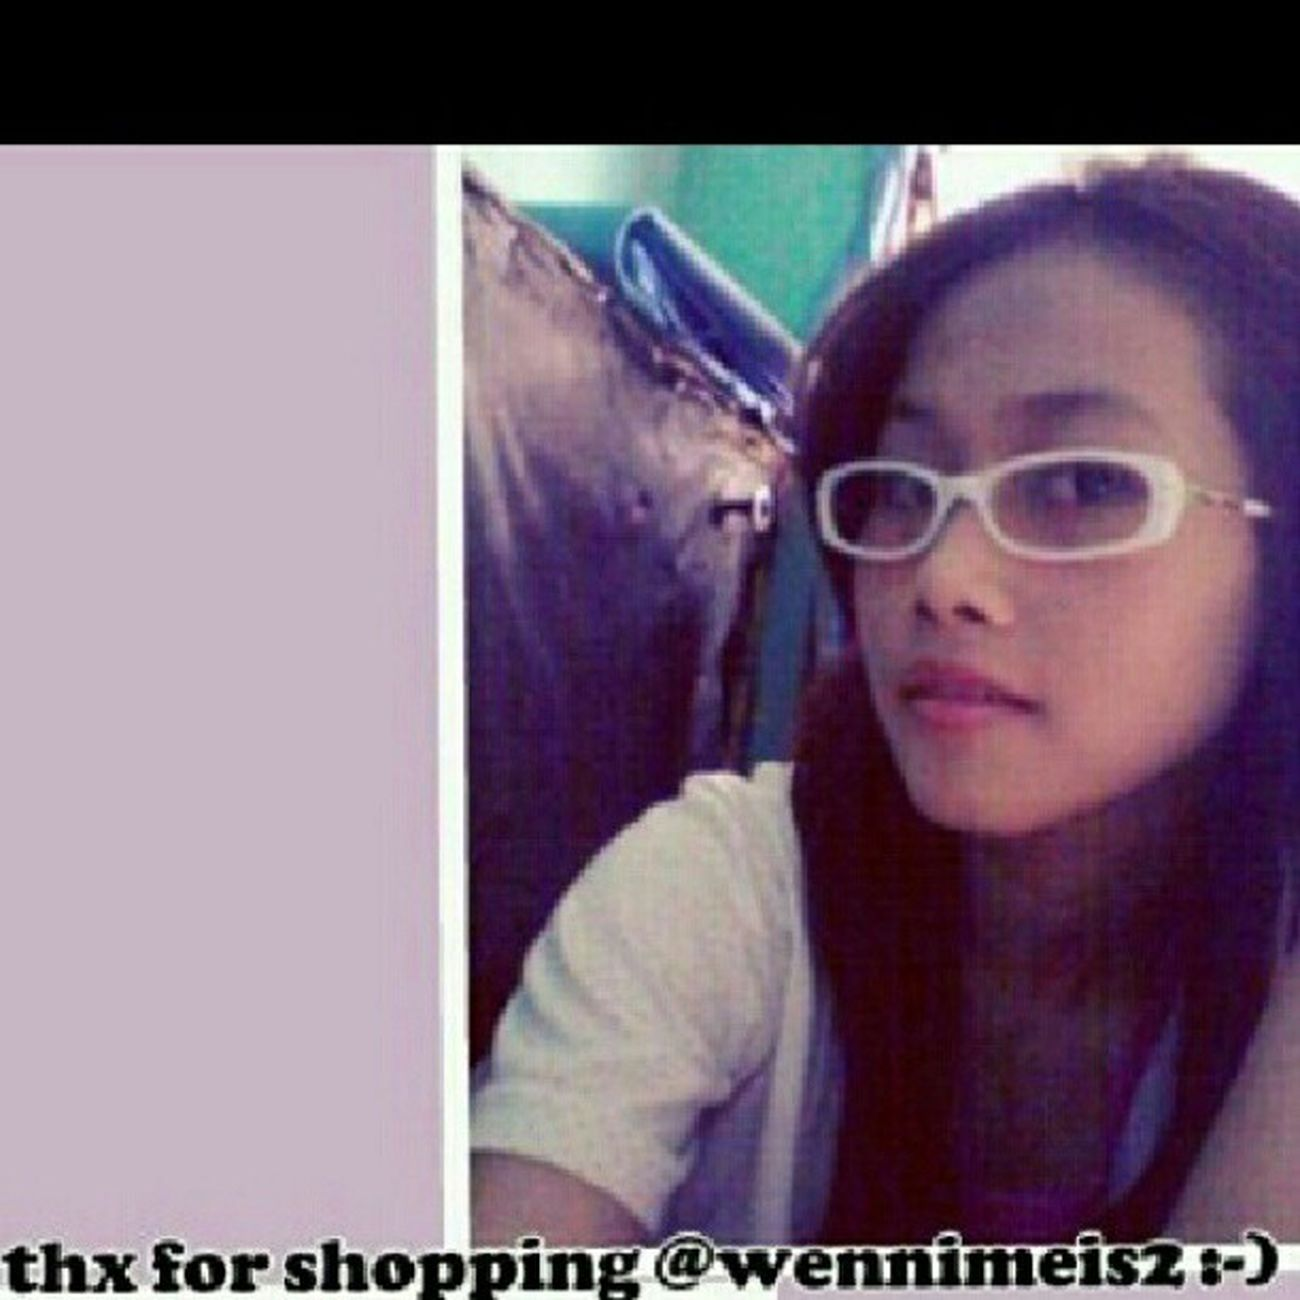 Thx for shopping again tj-miuframe white gold @wennimeis2 {}:-) Kacamata Kacamatamurah